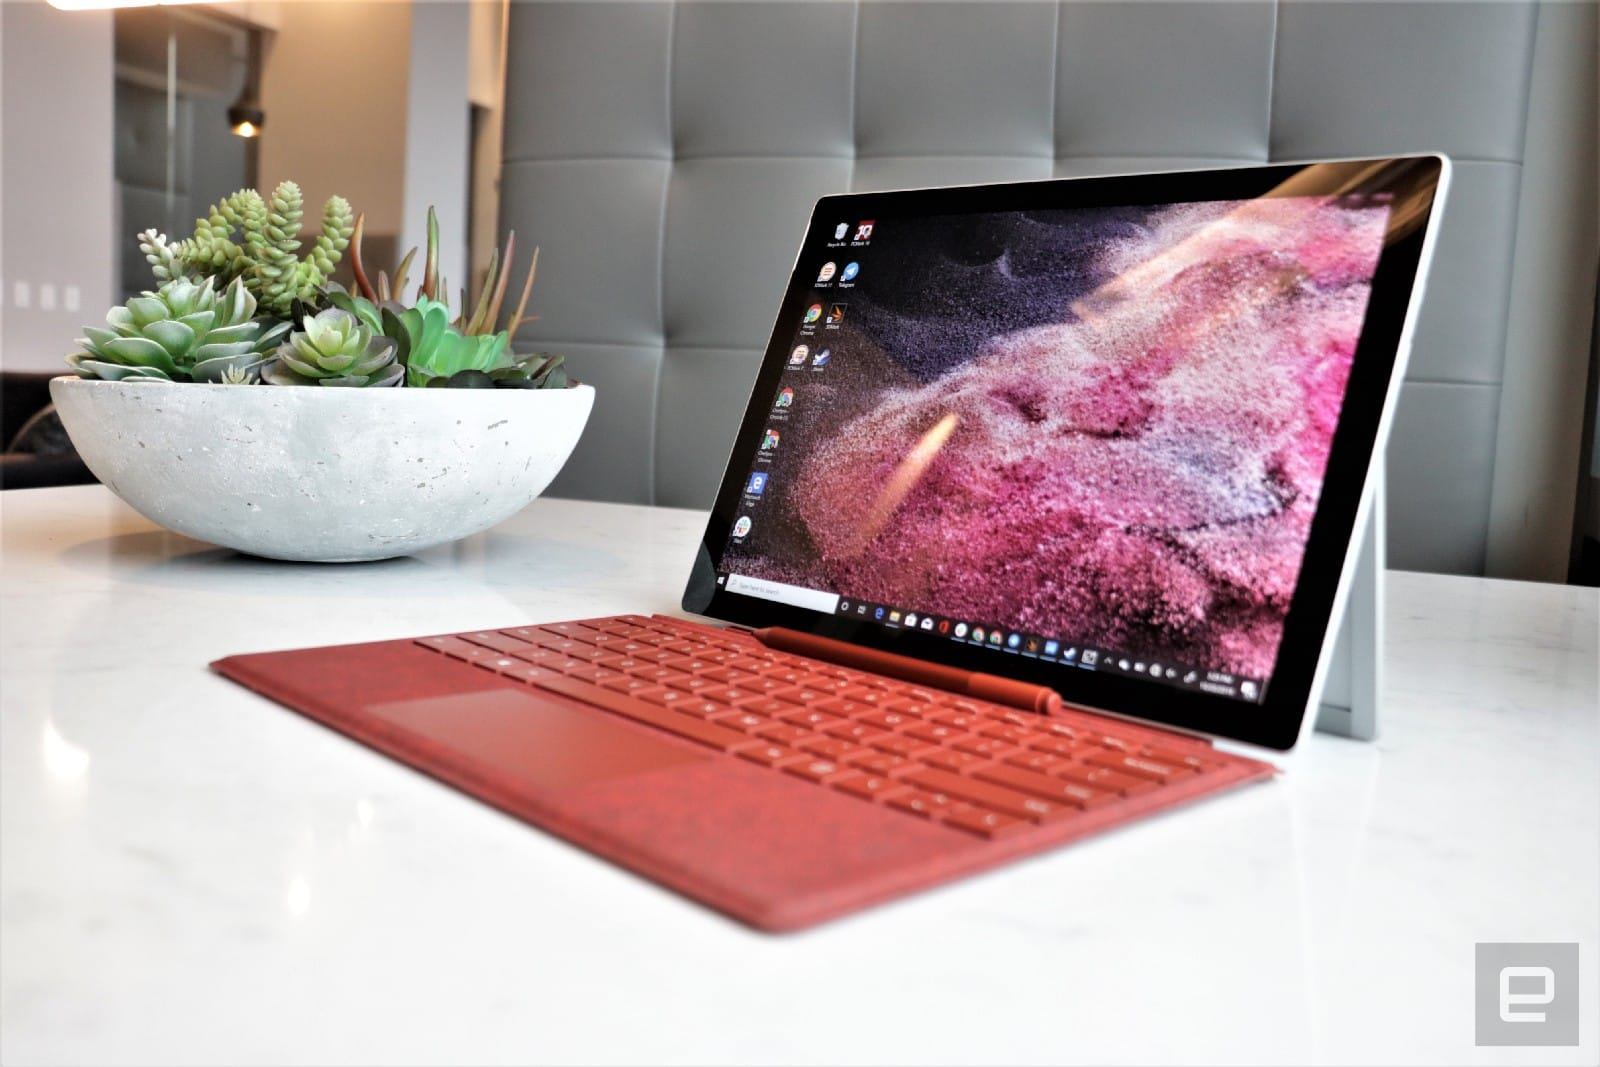 Save up to $200 on a Surface Pro 7 or Surface Laptop 3 at Amazon